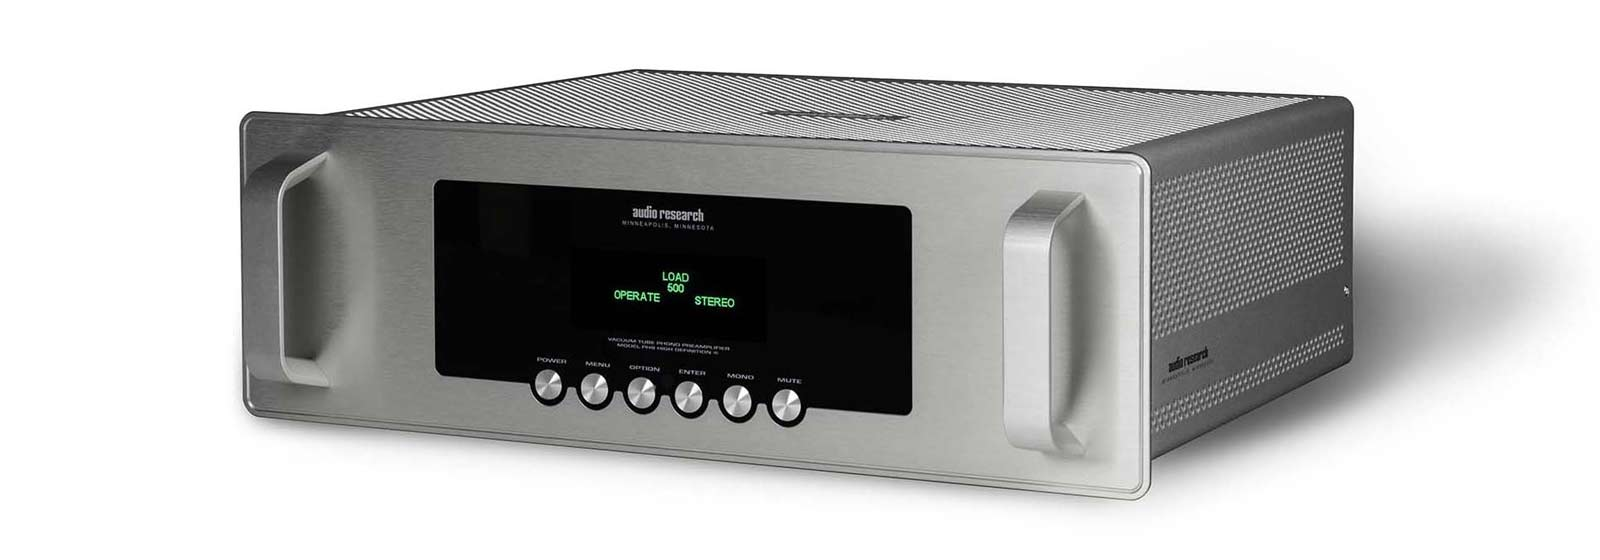 Audio-Research-PH9-phono-stage